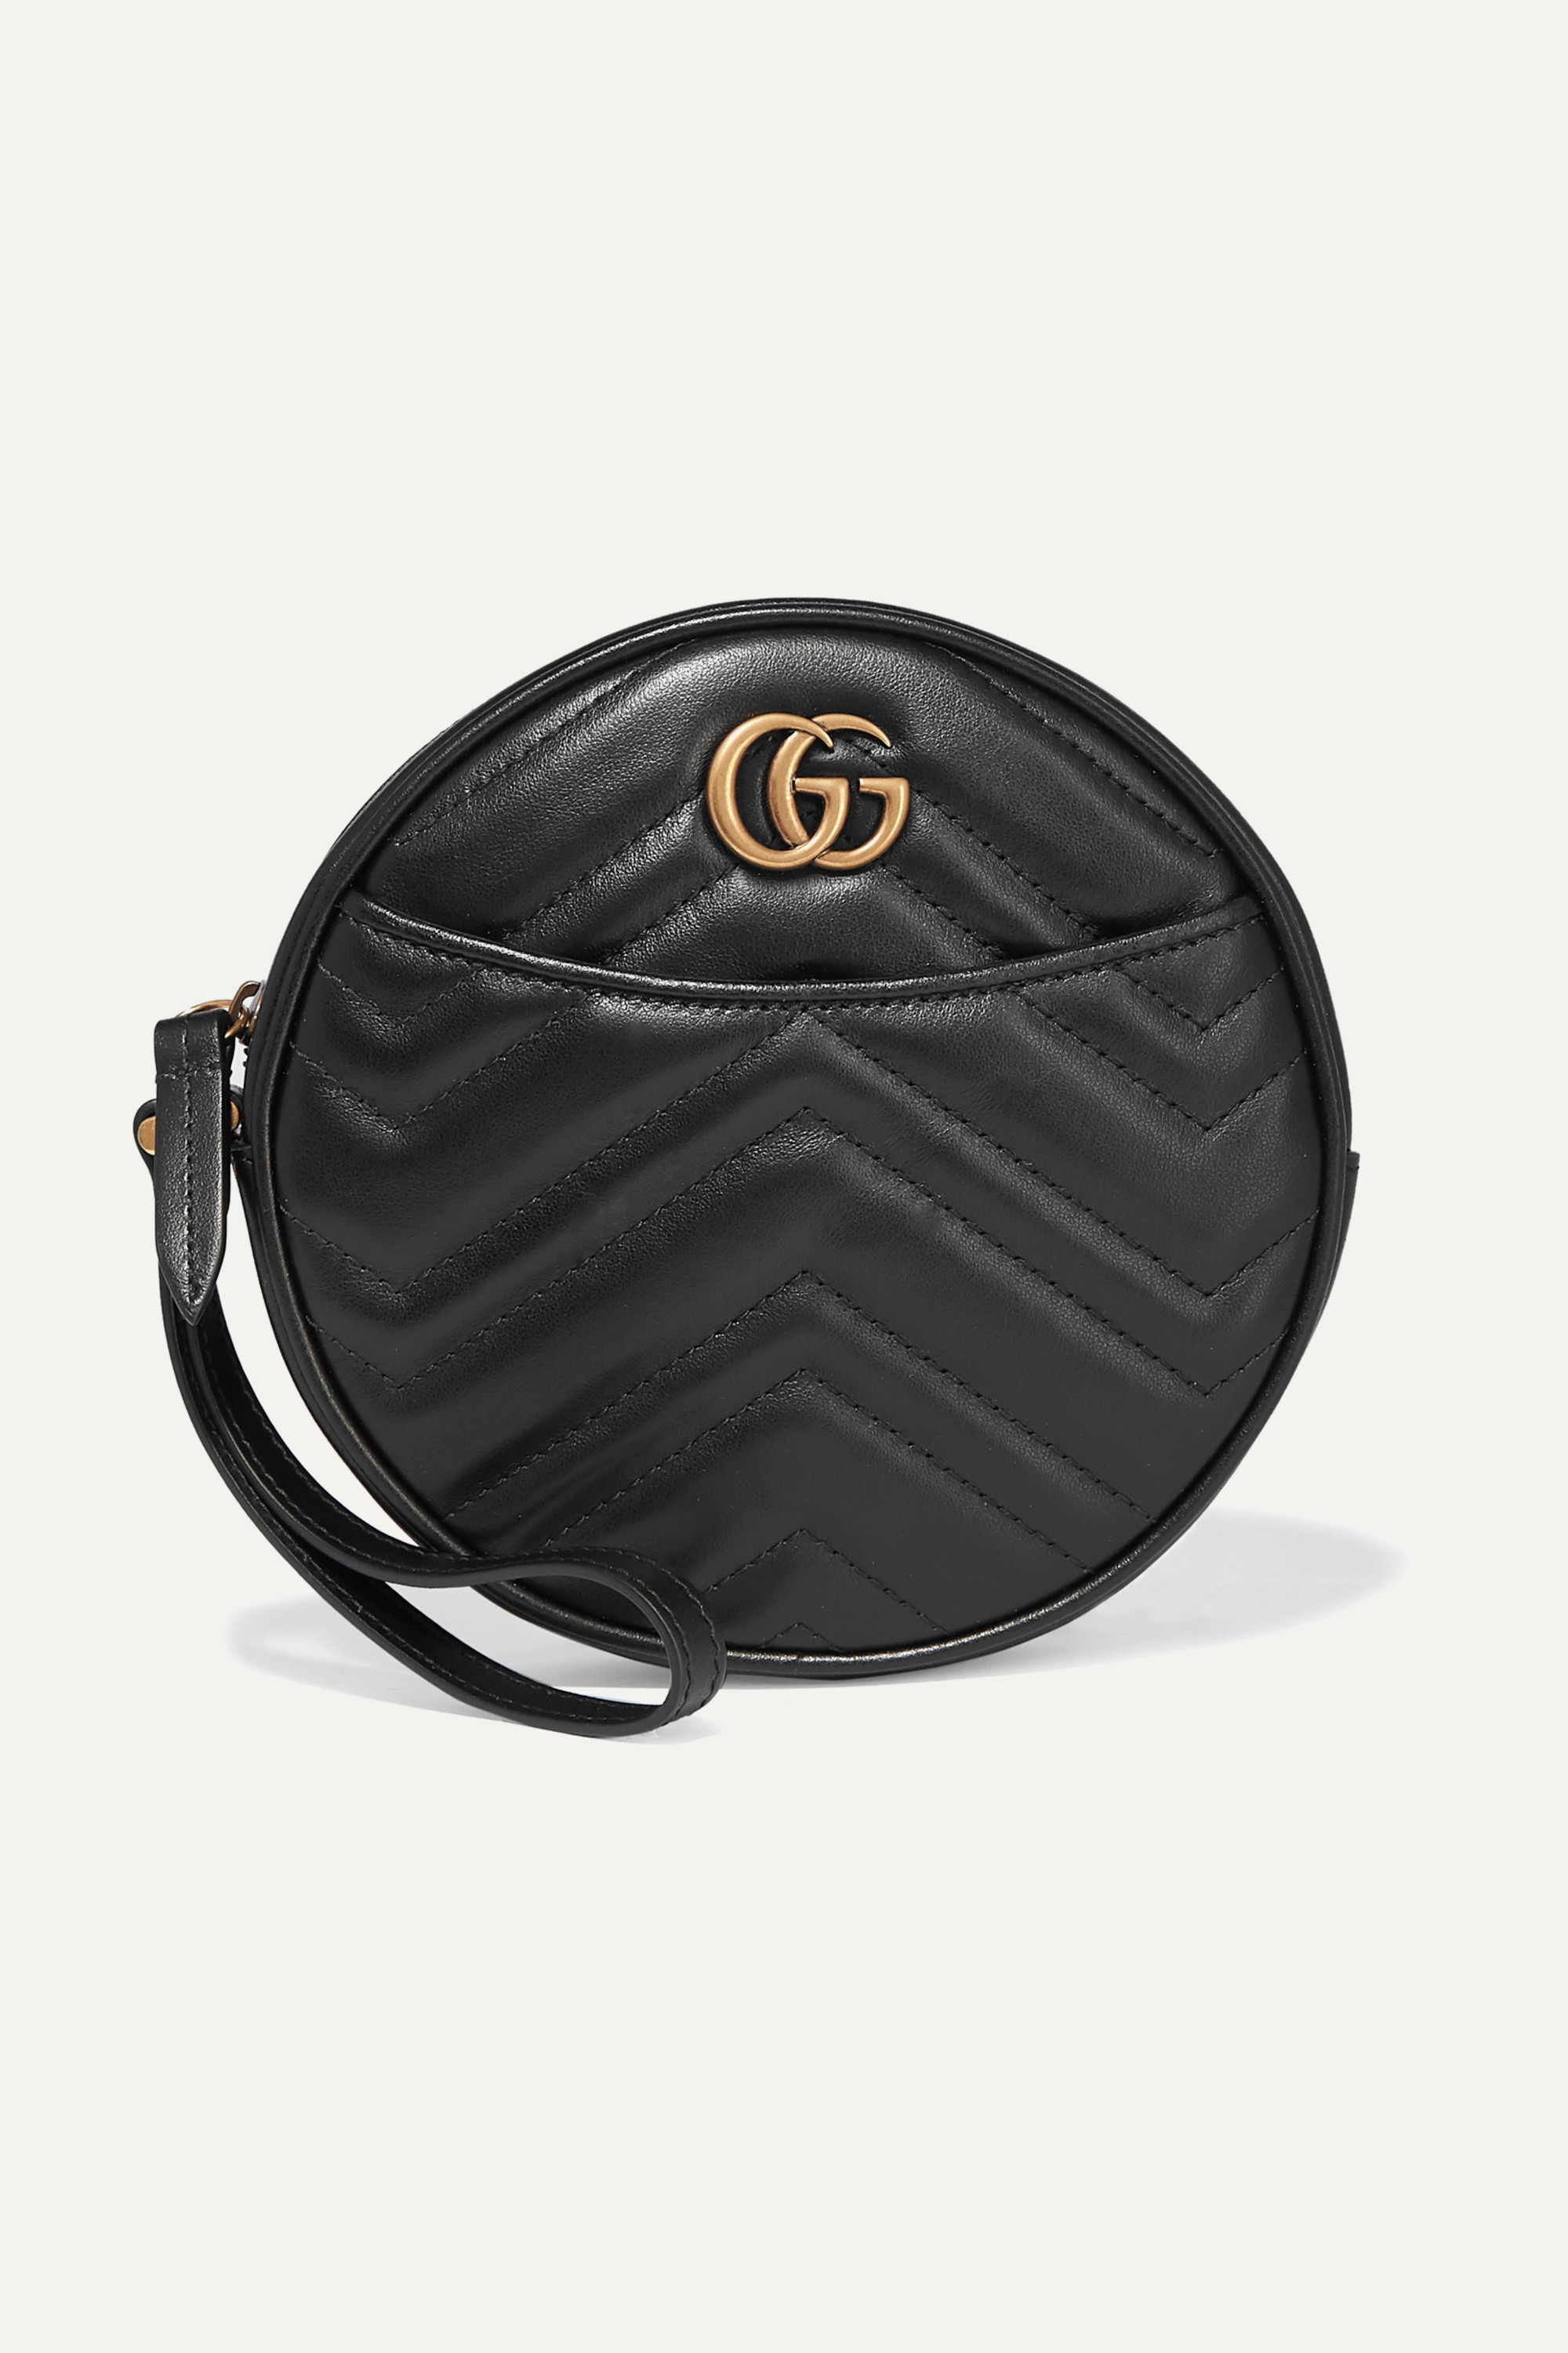 Gucci GG Marmont Circle large quilted leather clutch